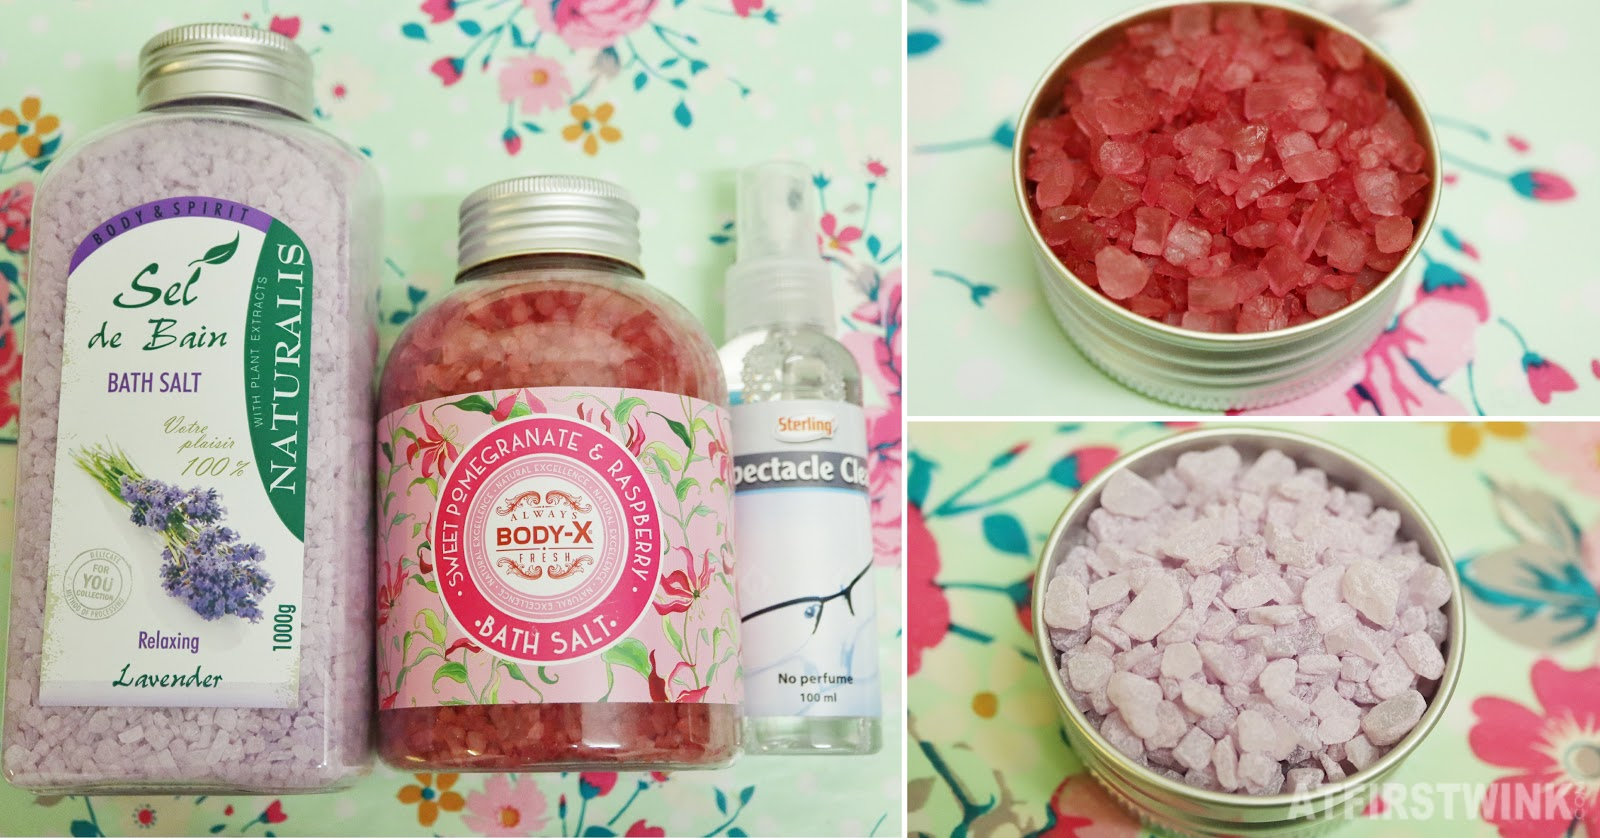 Normal store utrecht  naturalist lavender bath salt body-x sweet raspberry pomegranate glasses cleaner